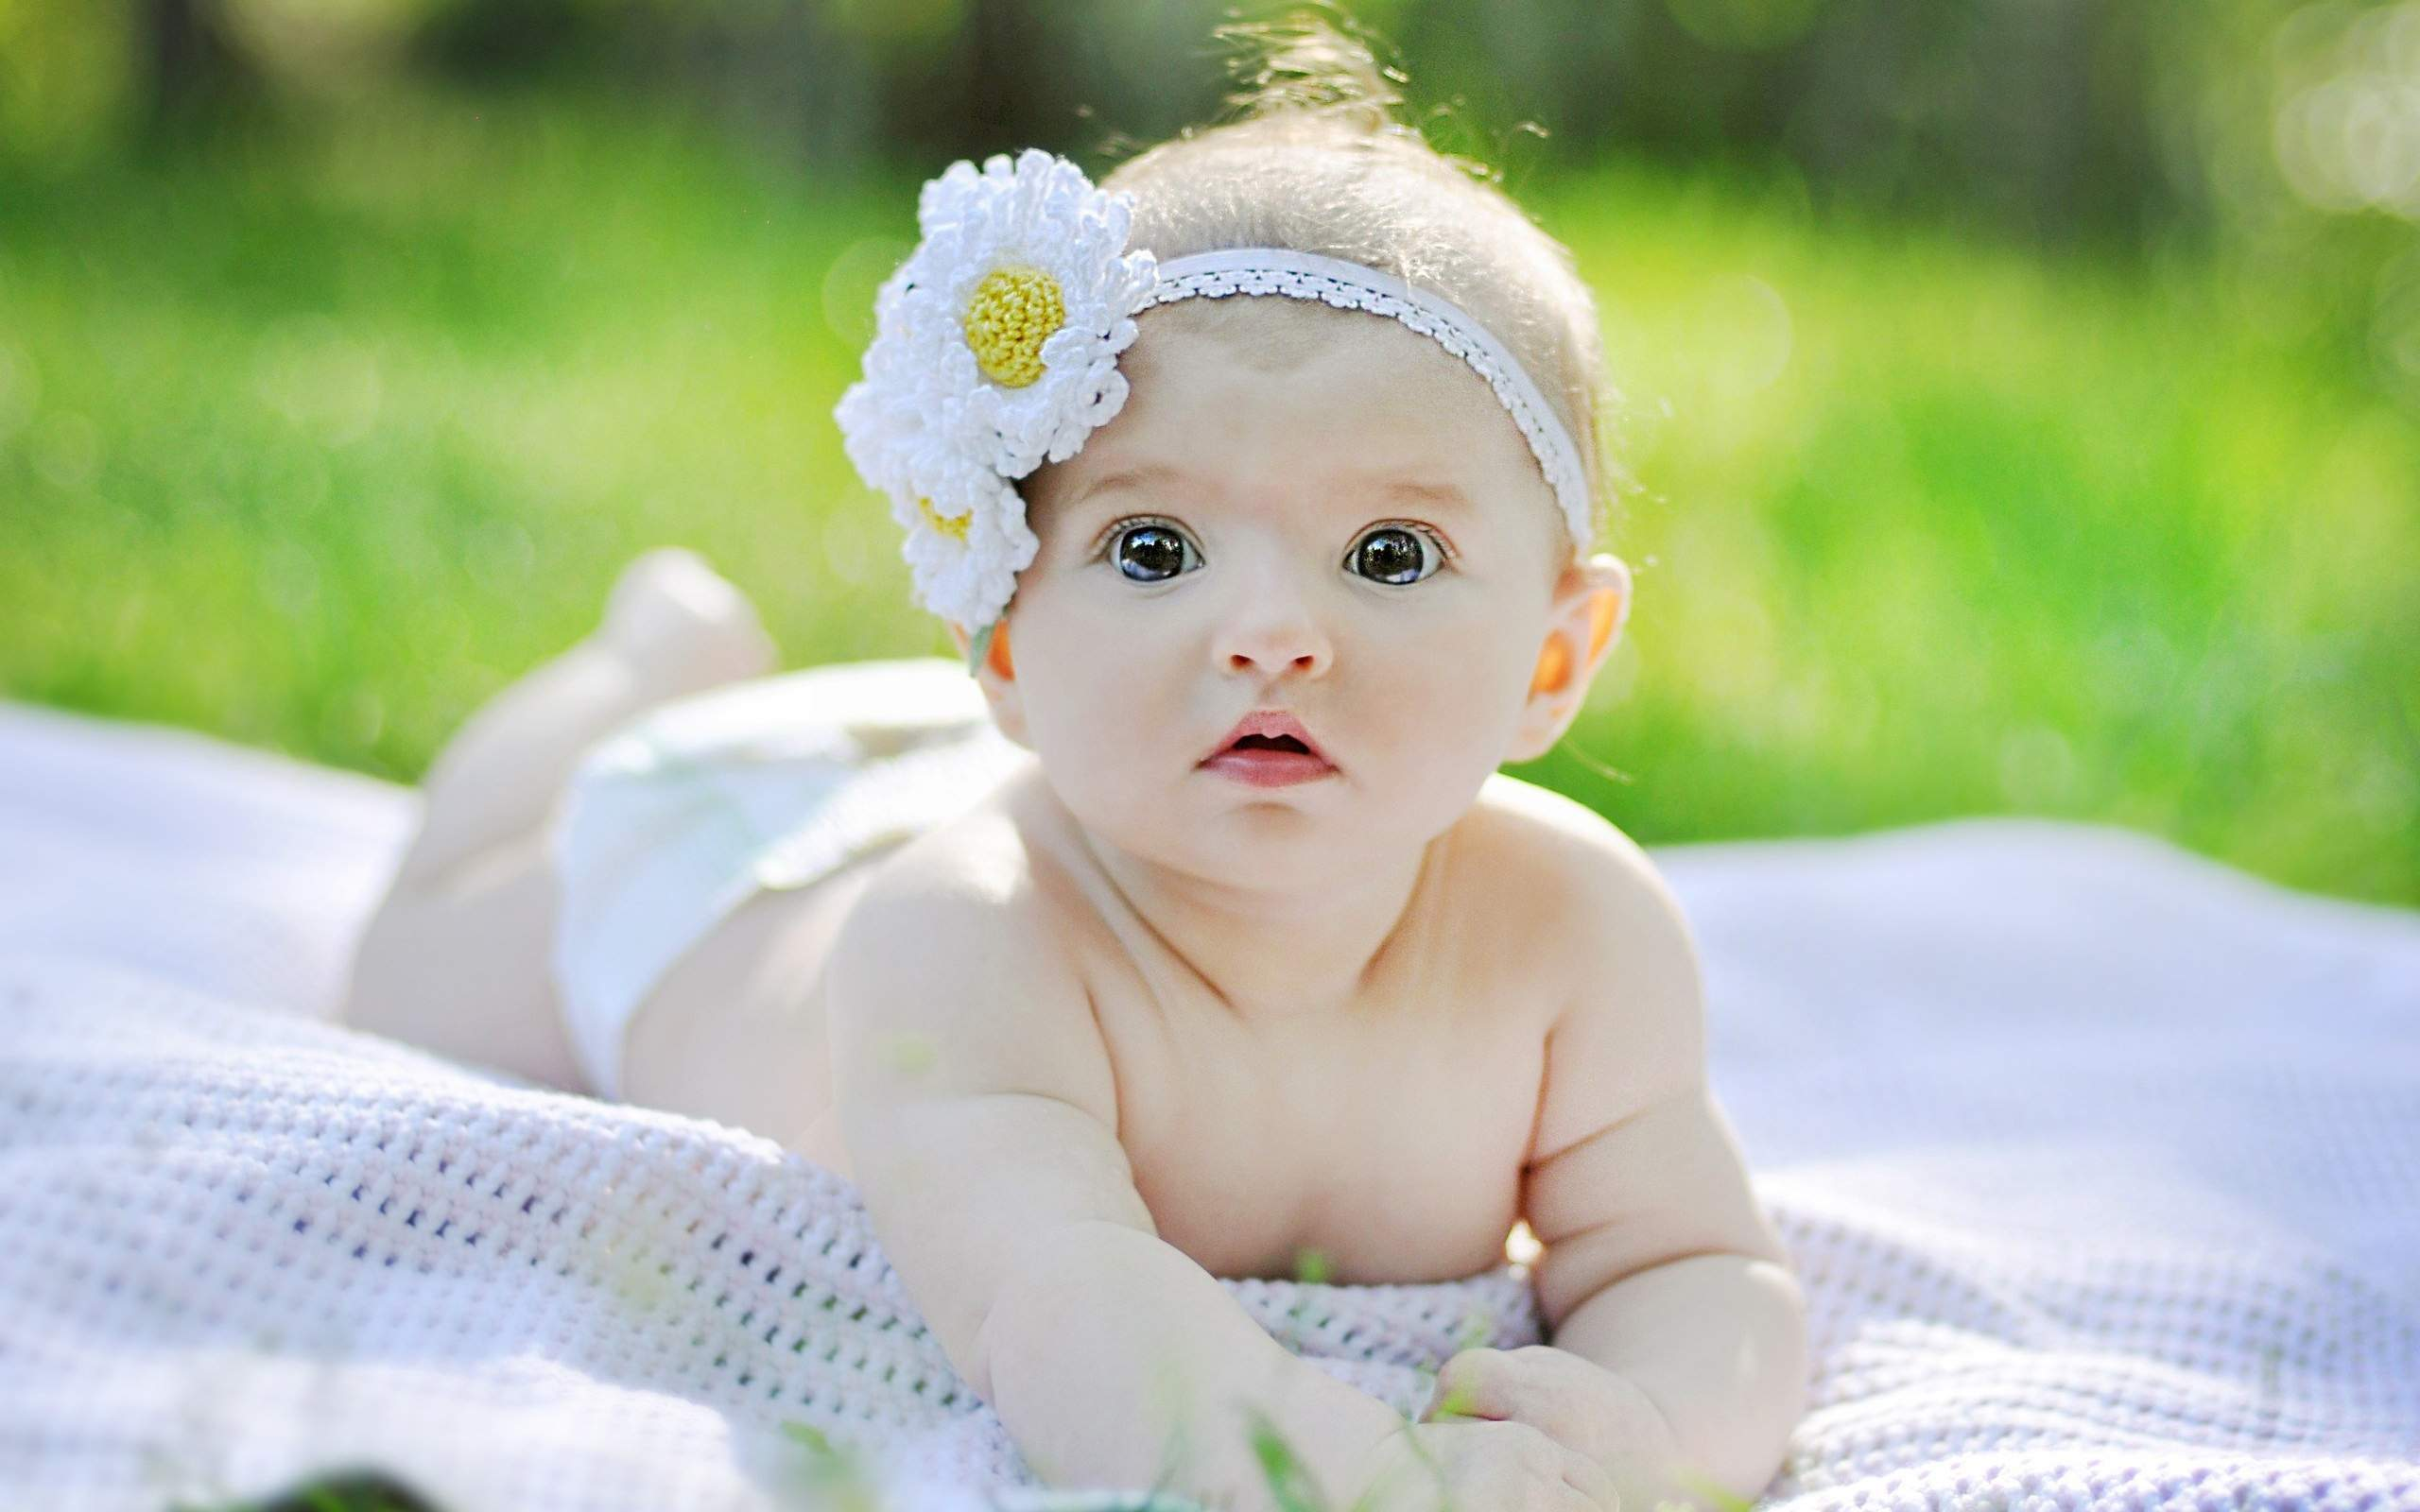 Cute Baby Girl Wallpaper HD Download For Desktop & Mobile